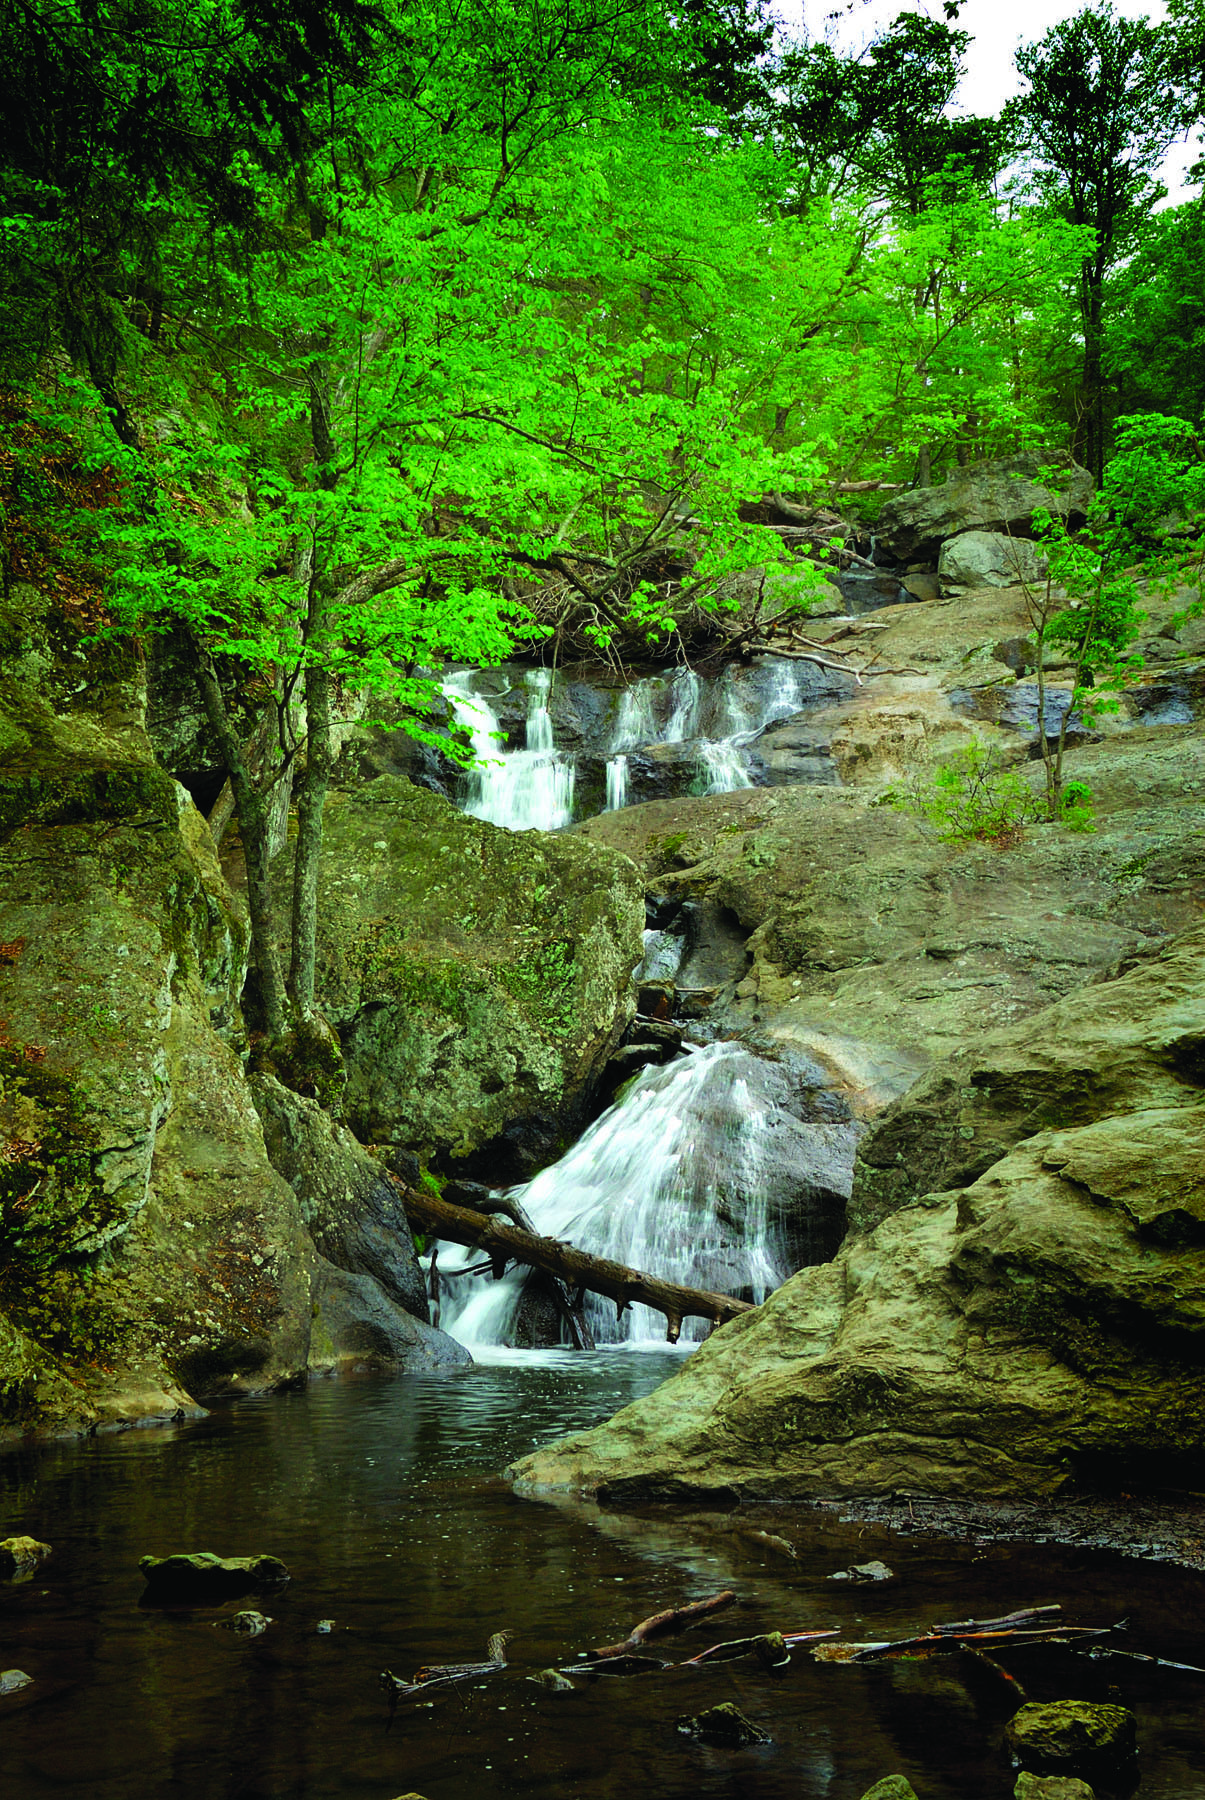 Cunningham Falls State Park, located in the Catoctin Mountains, is known for its history and scenic beauty, as well as its 78-foot cascading waterfall.